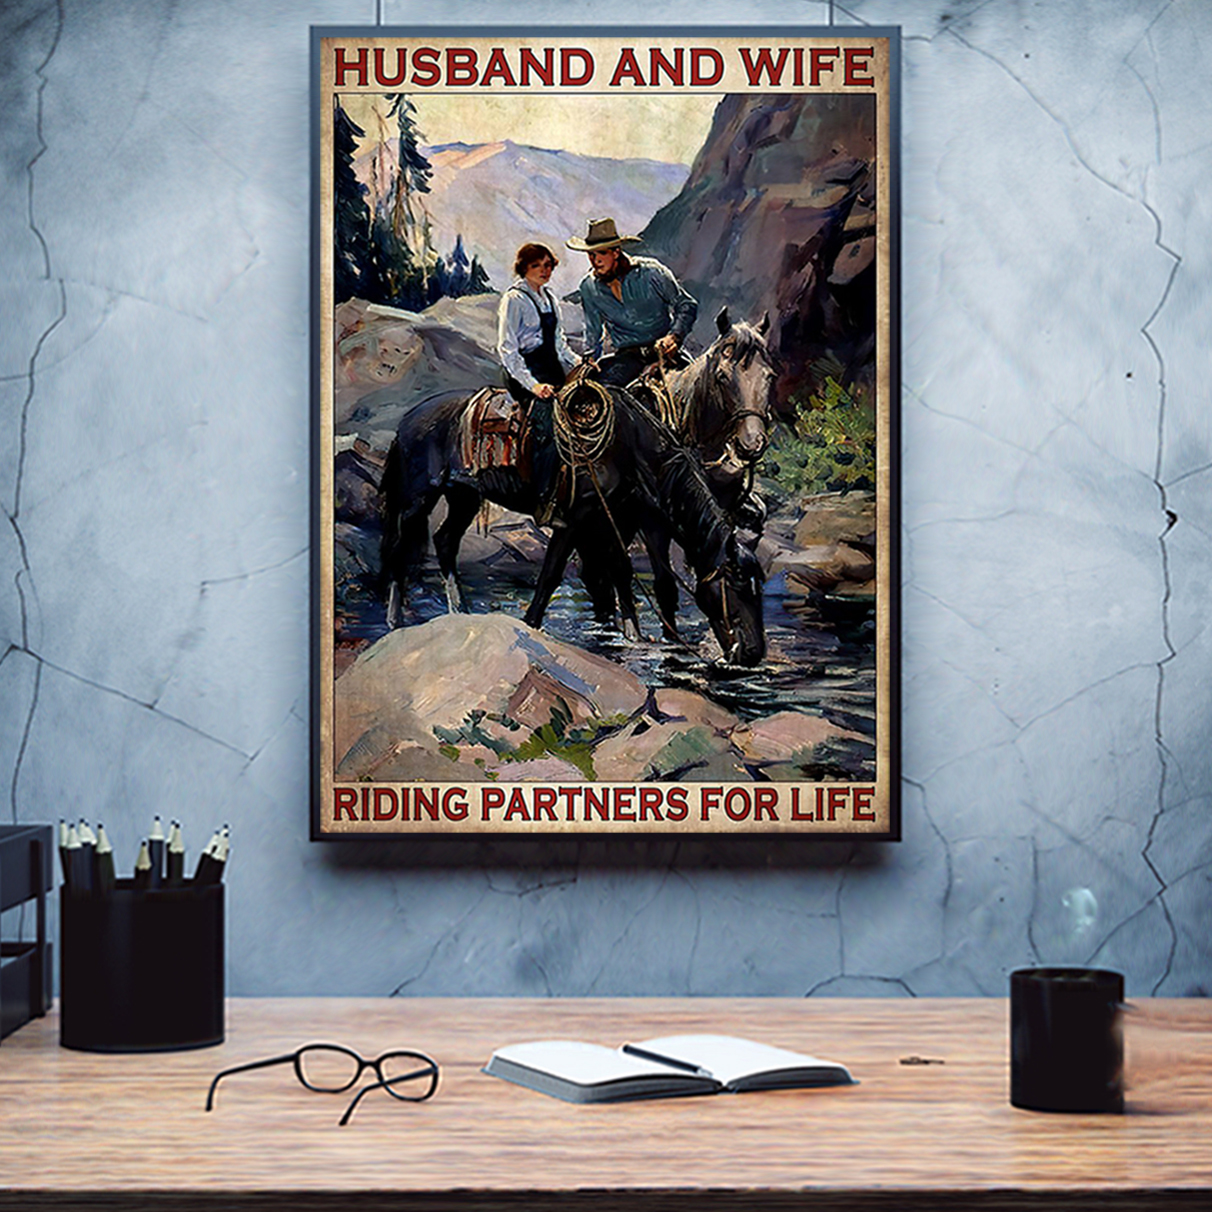 Husband and wife riding partners for life poster A1